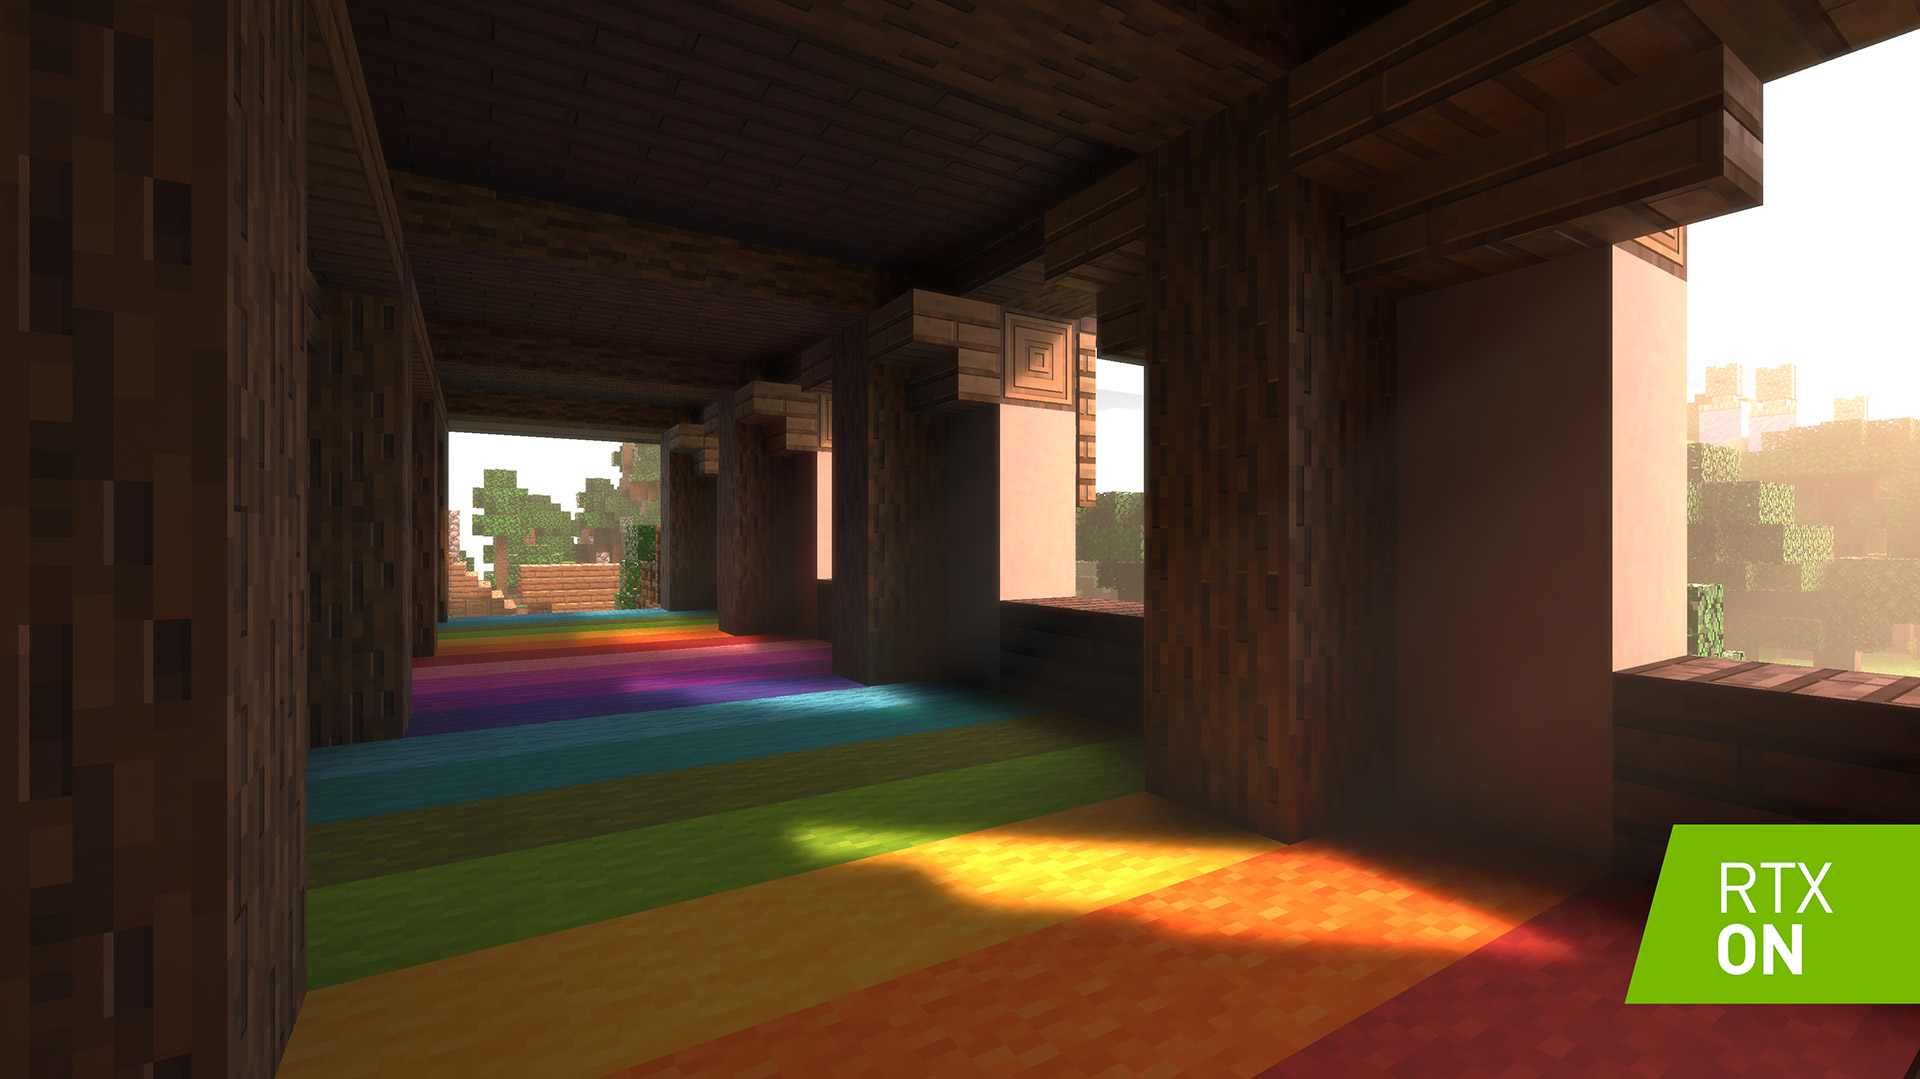 Minecraft is getting visual upgrades, including ray tracing photo